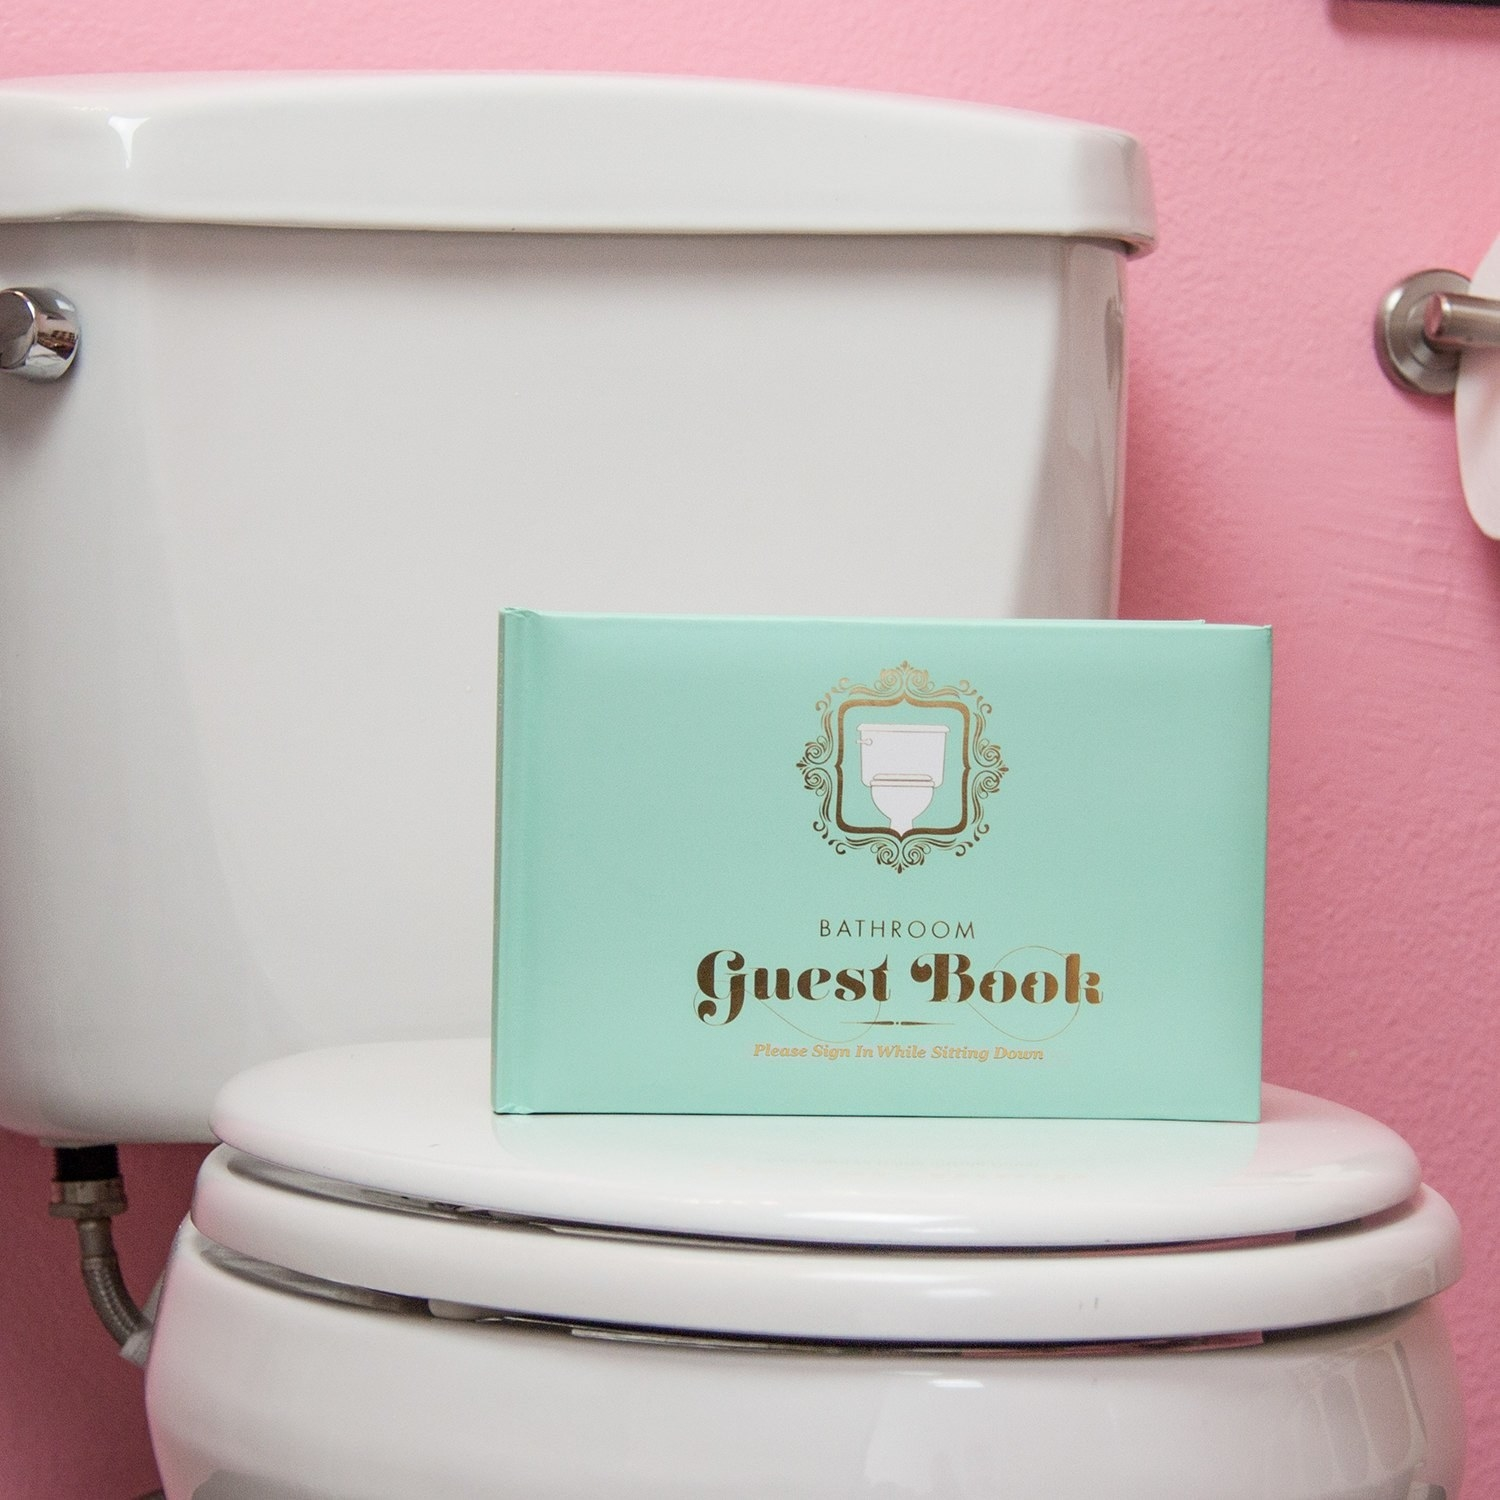 Guestbook on toilet